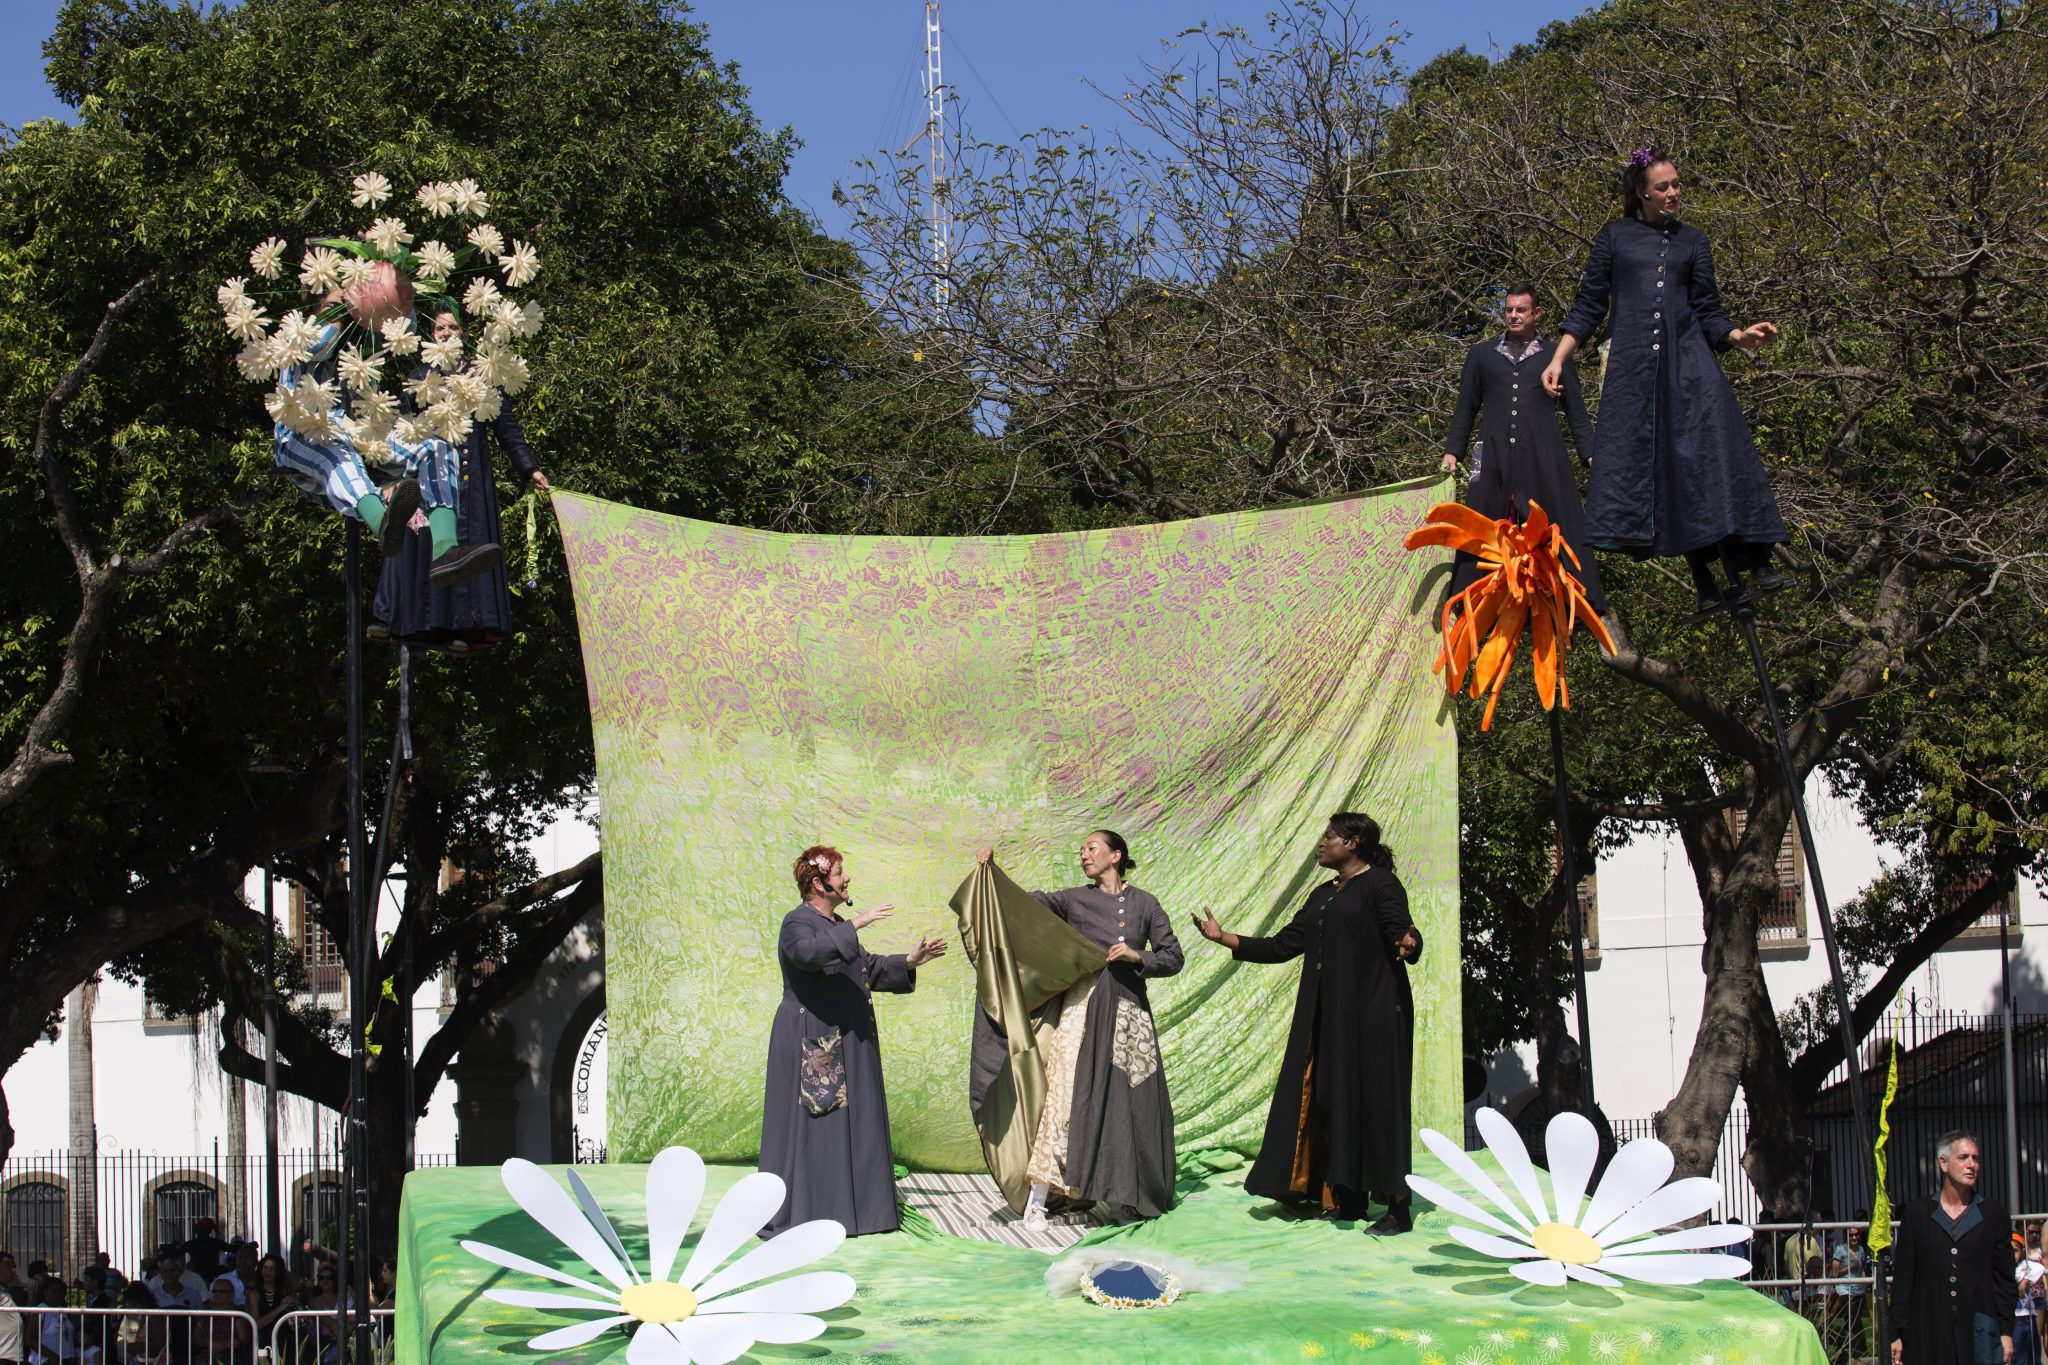 Five performers in The Garden. They are all wearing long blue or grey dresses. Three of them are standing on the stage, in front of a fabric green backdrop. The stage includes two large white flowers. Two perfomers are standing on stills, as if they were standing in the tree to the right of the stage.